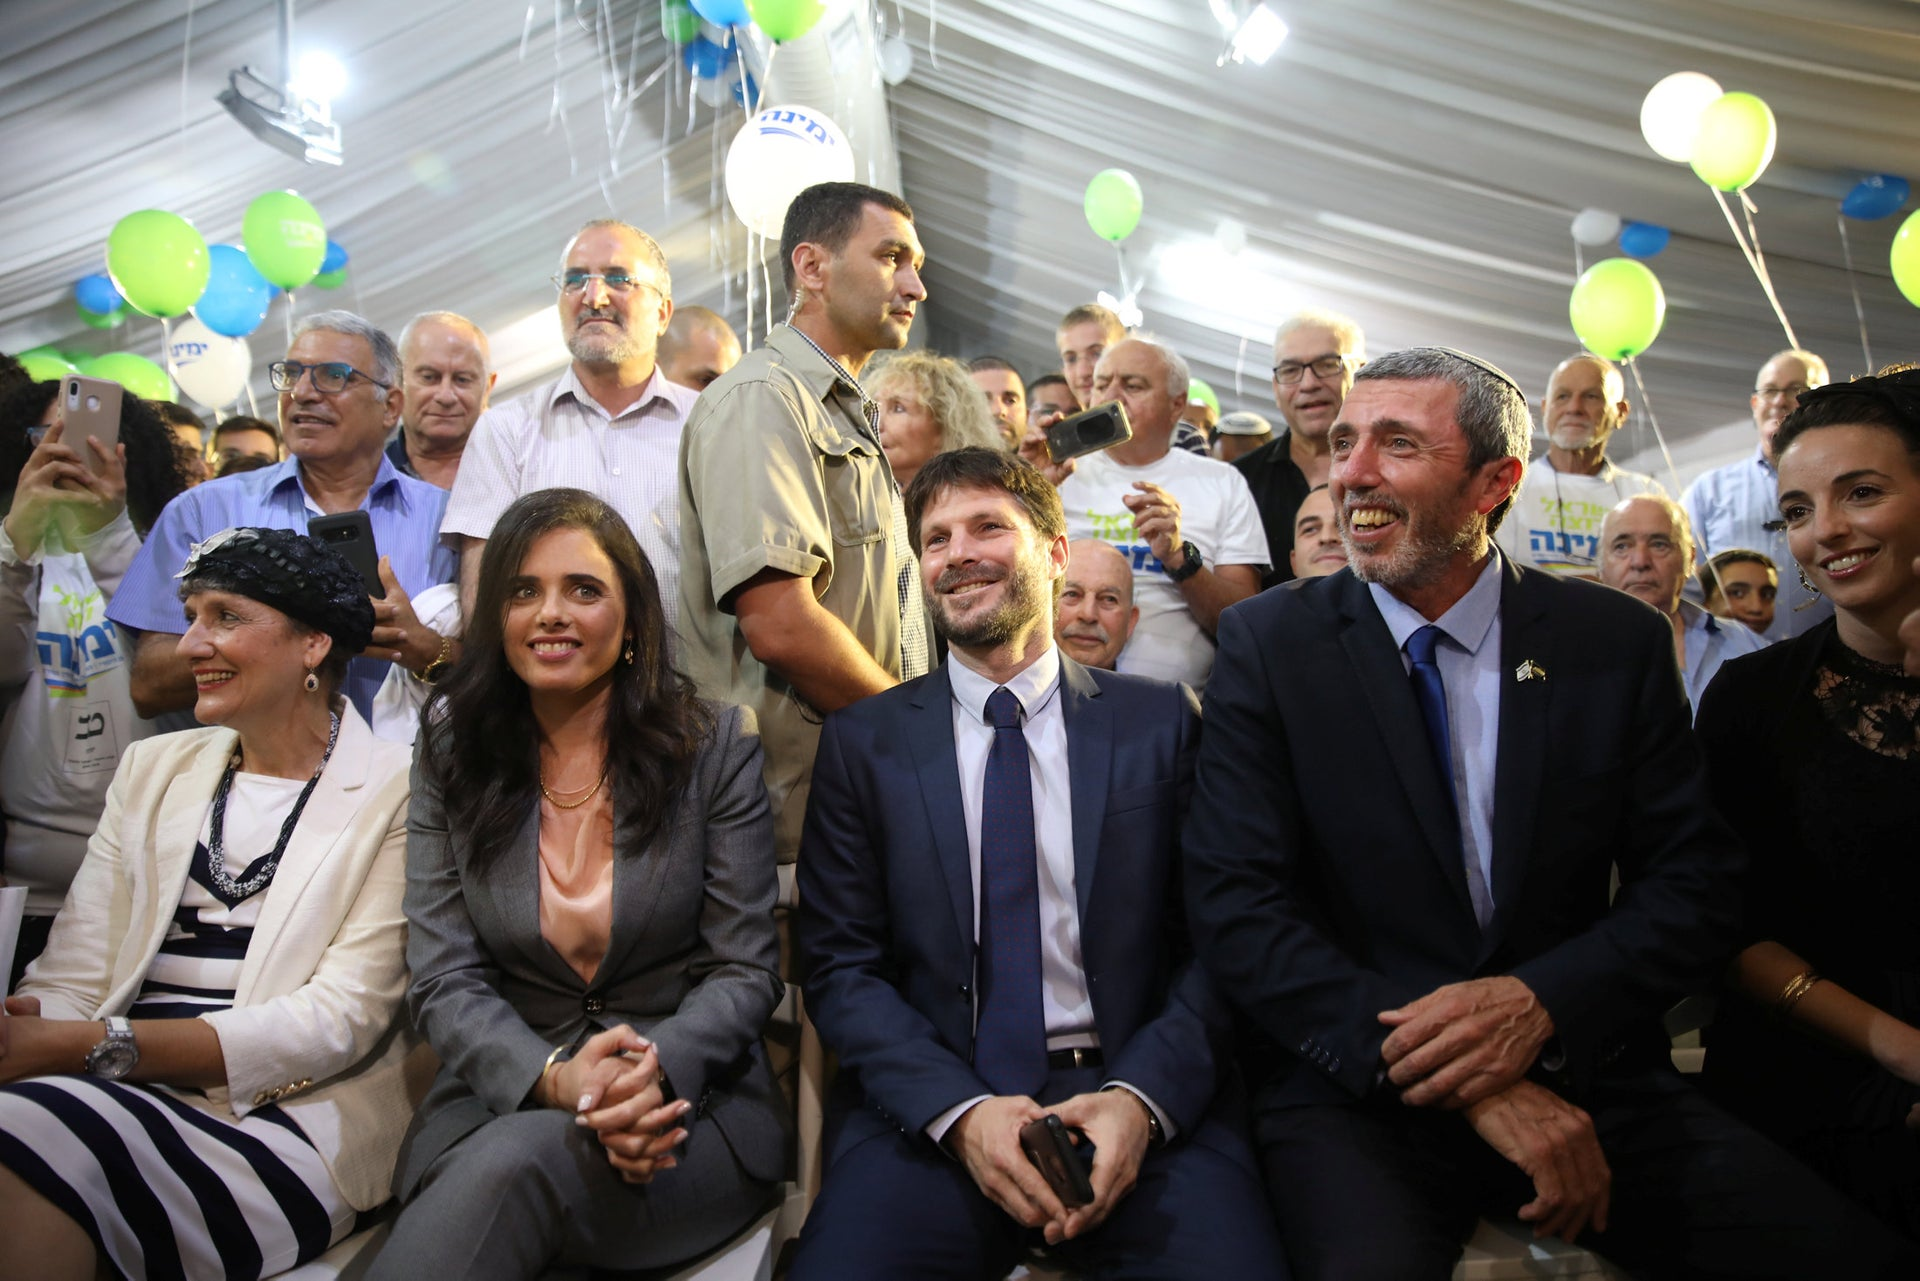 """The launch of the """"Yamina"""" party, with Ayelet Shakked and Bezalel Smotrich in the center, flanked by Rabbi Rafi Peretz to their right"""